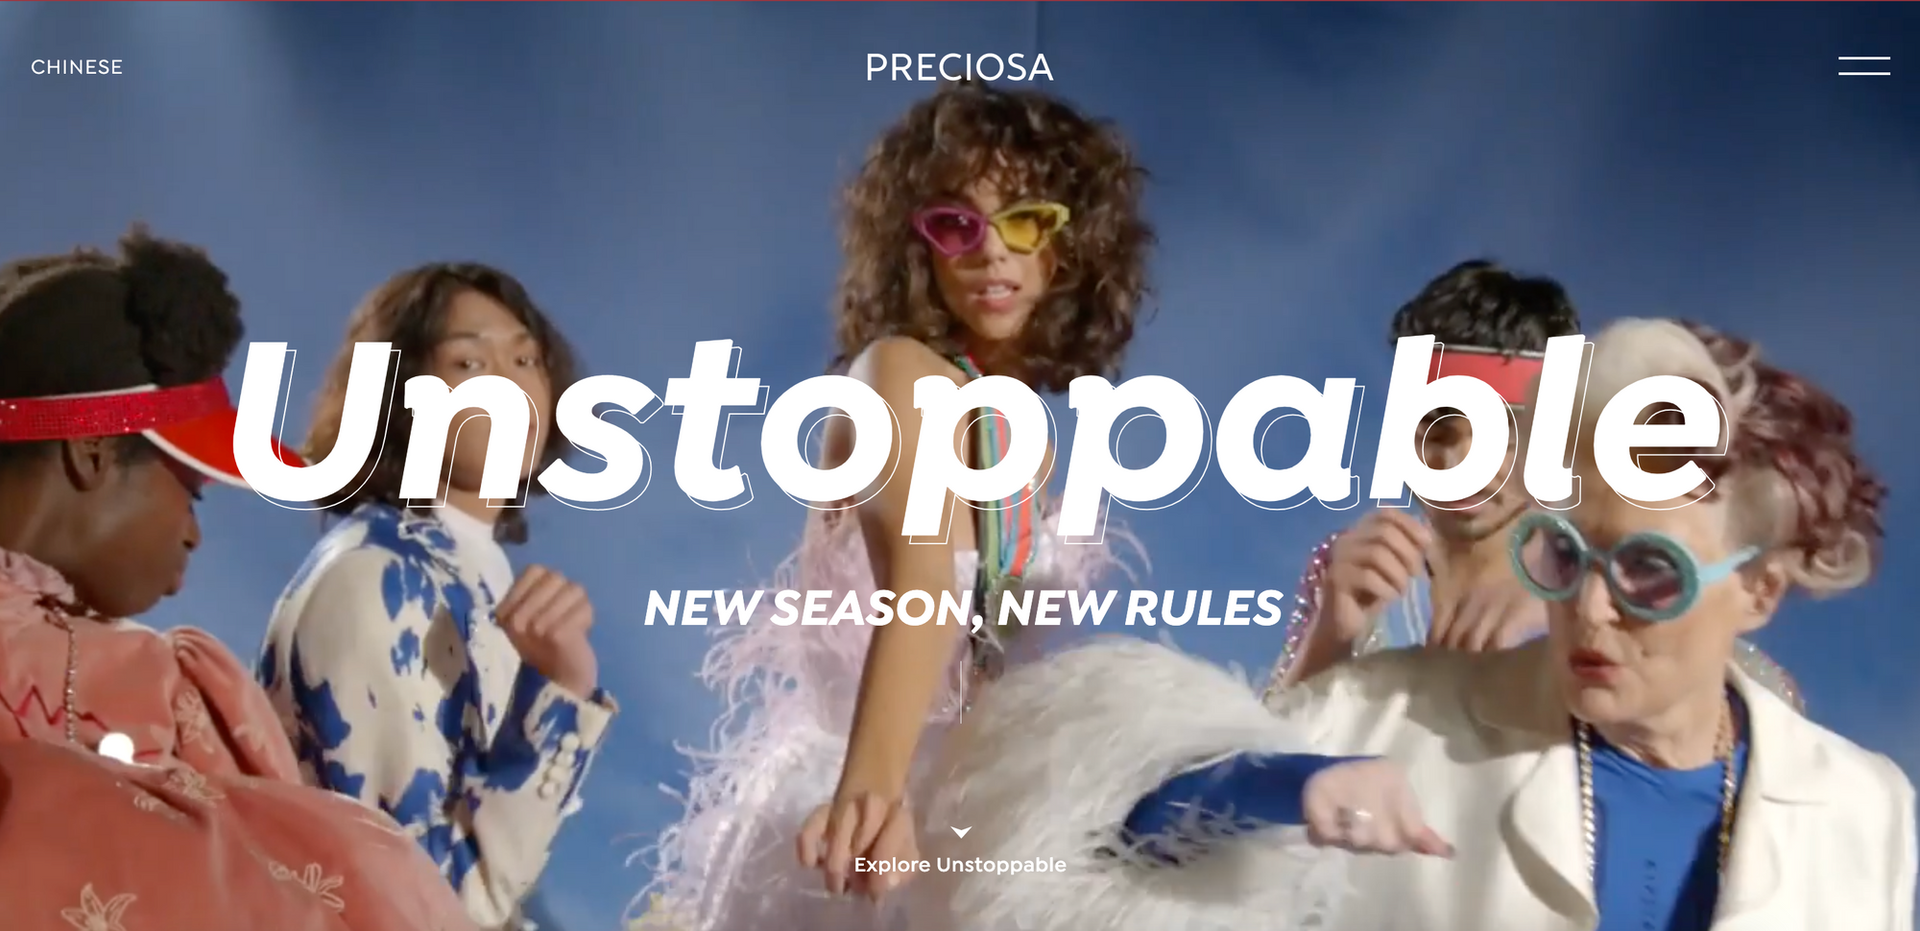 UNSTOPPABLE CAMPAIGN ss22 for Preciosa crystals